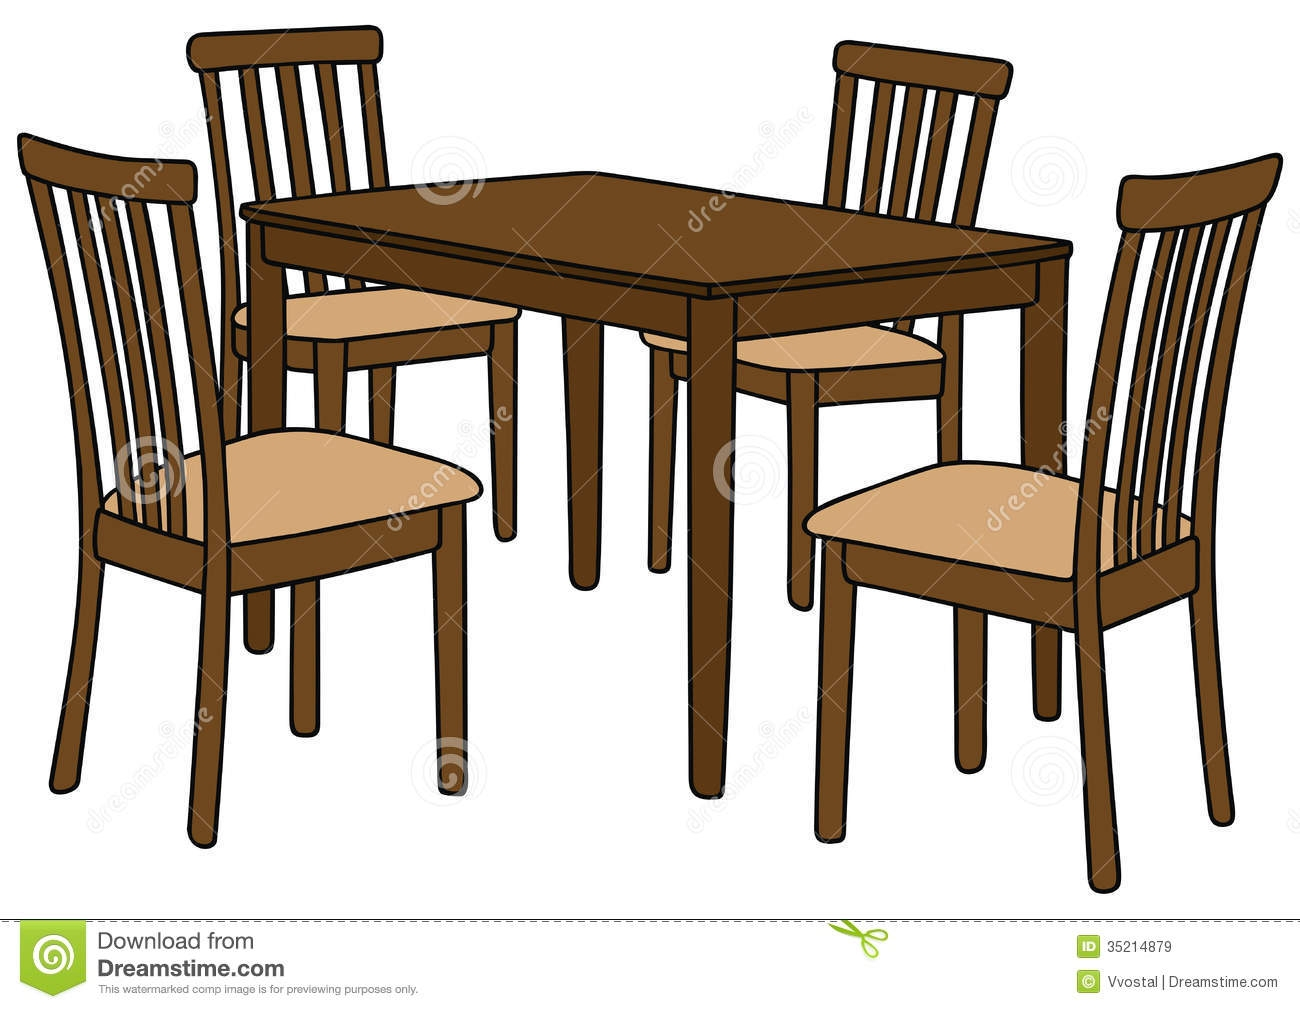 Table : Dining Room Table Clipart Scandinavian Compact The.